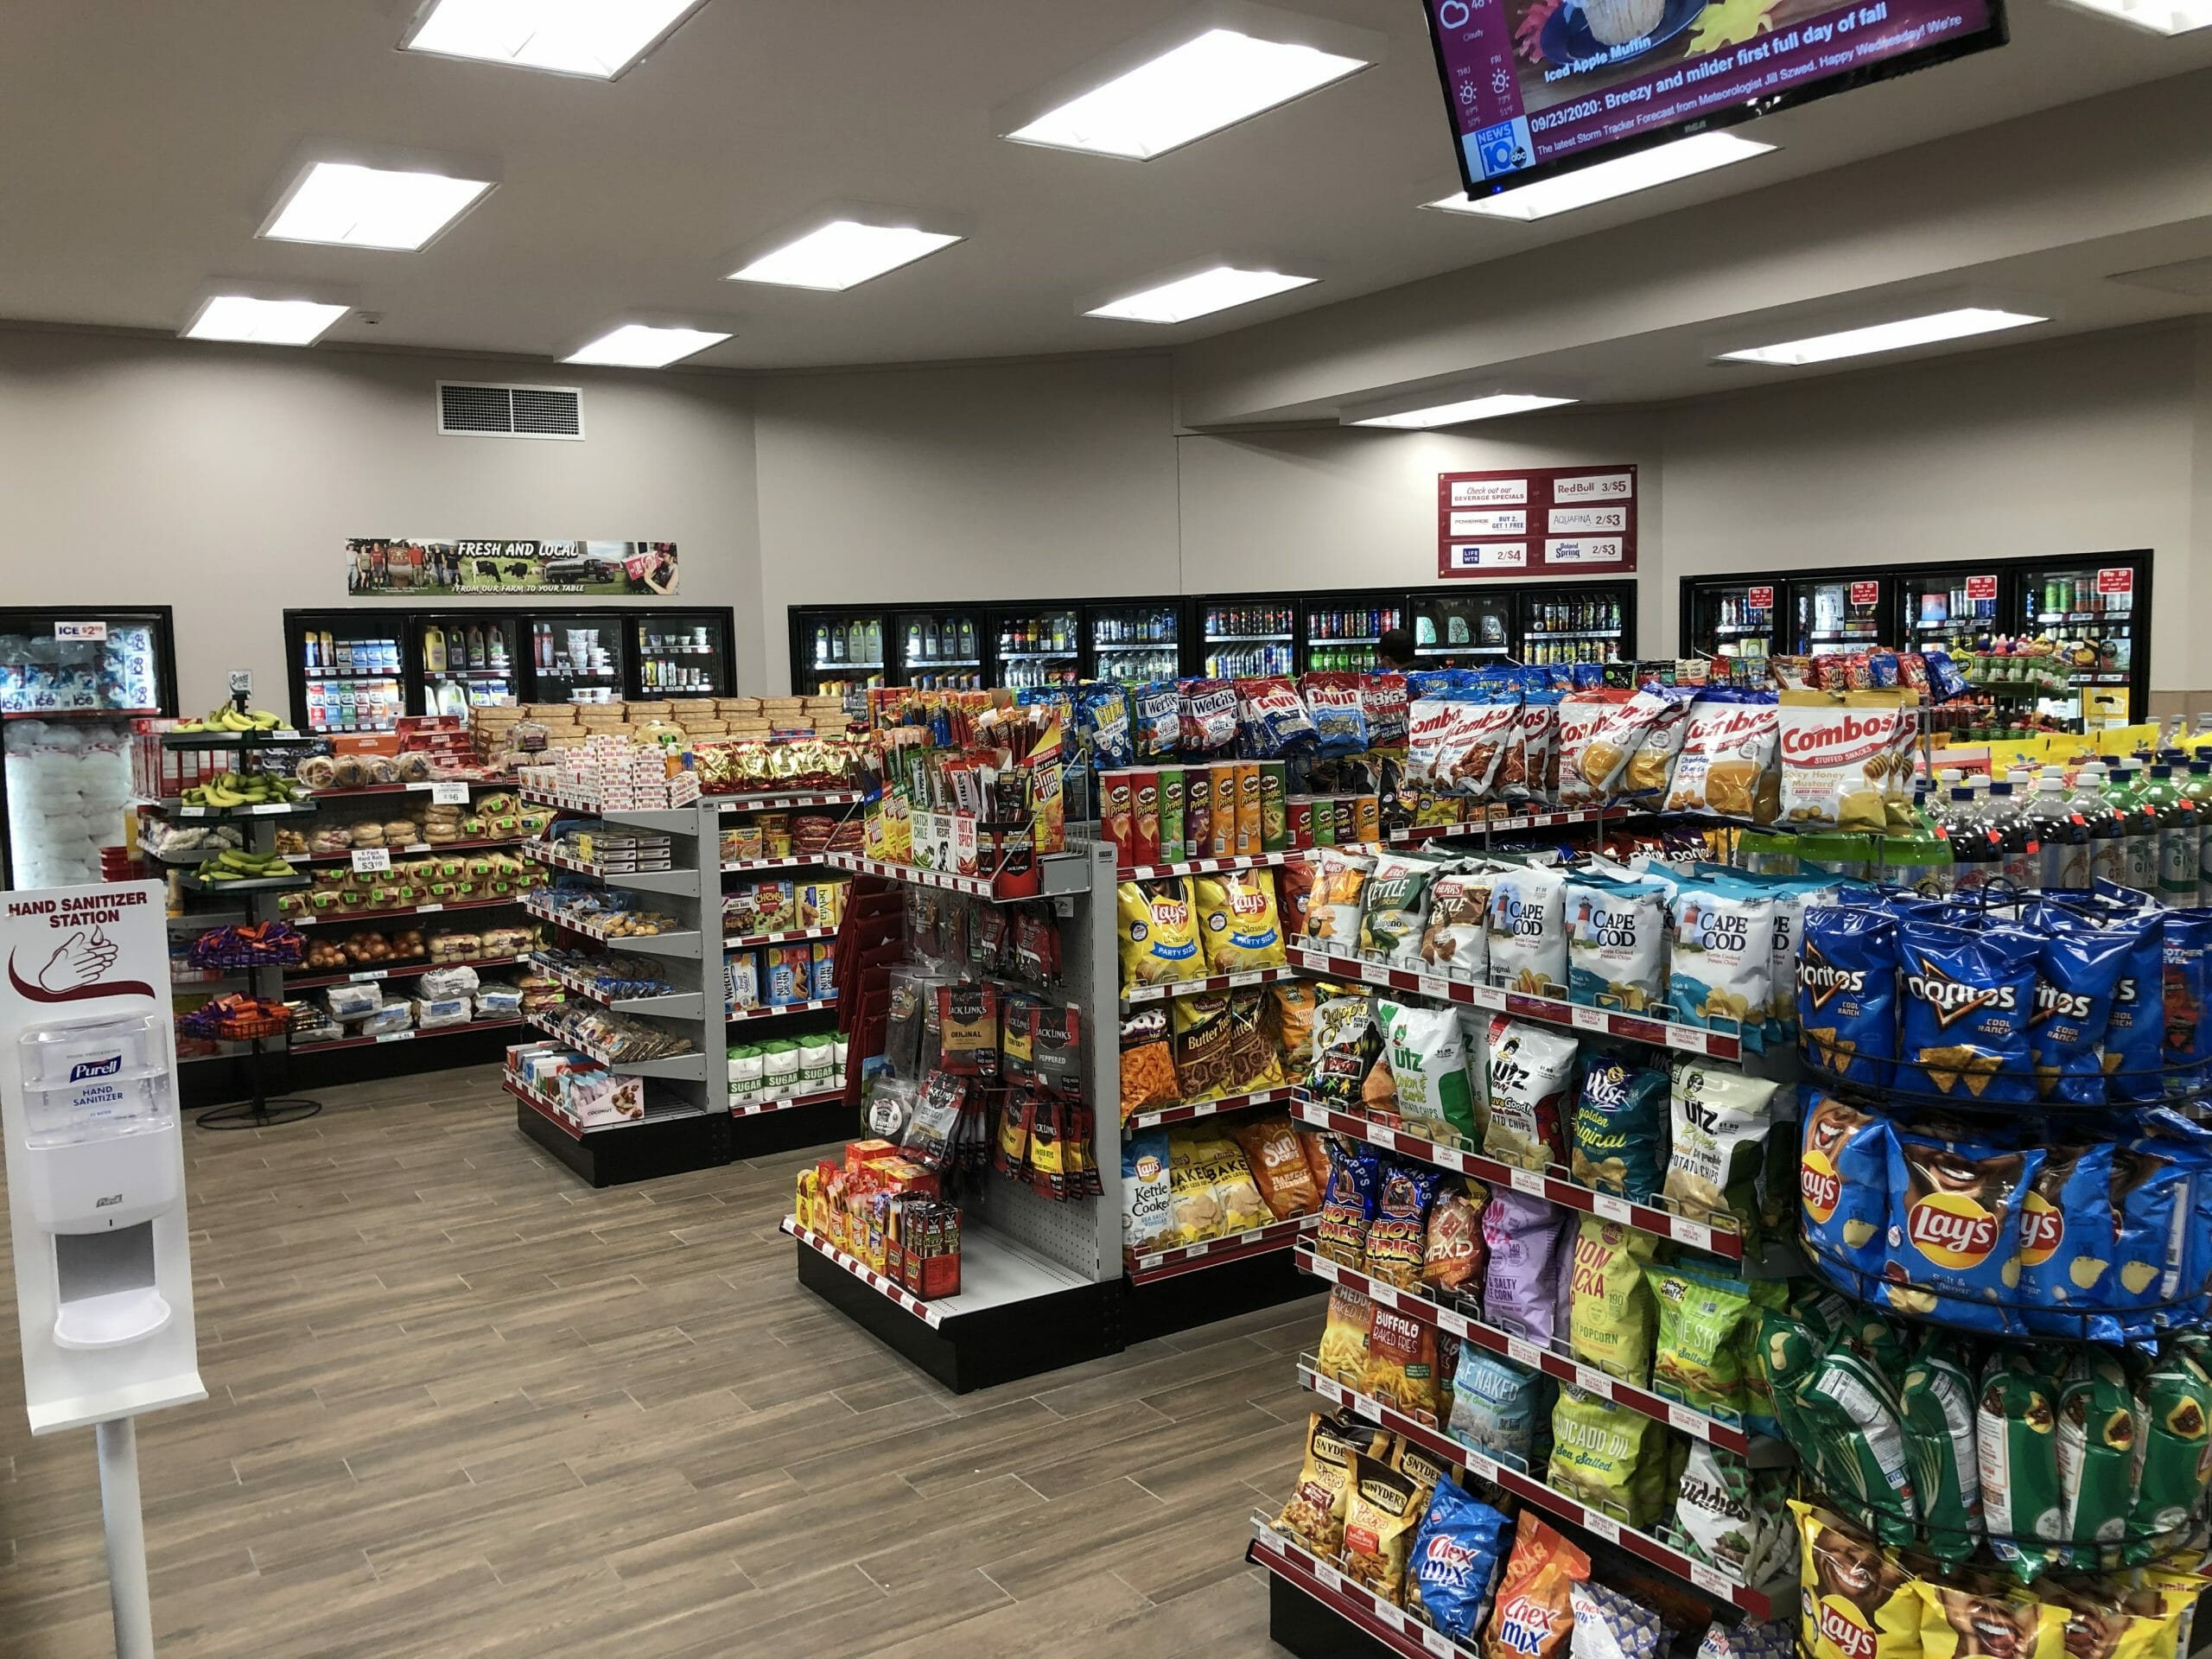 snack isles in store